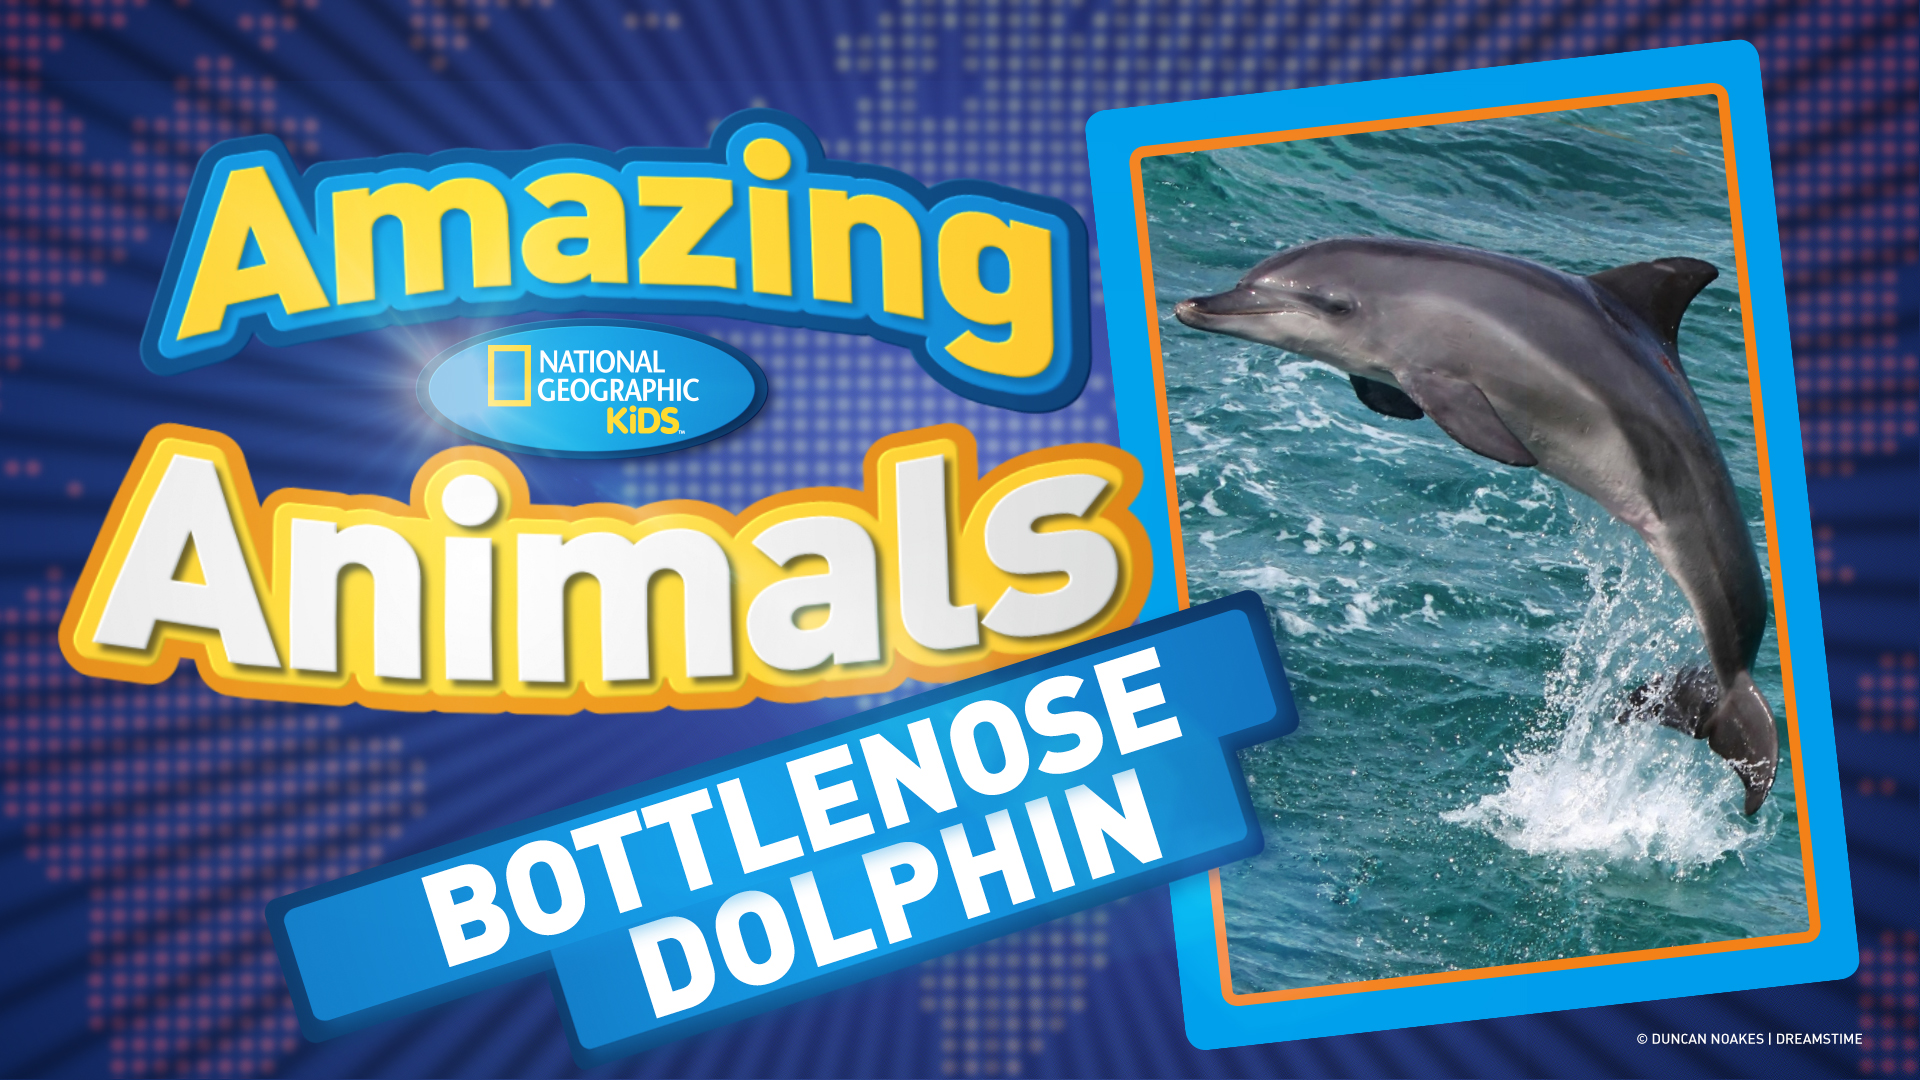 an analysis of the bottle nosed dolphin in the research of sea animals The migration route of the bottlenose dolphin between a bottle-nosed dolphin & a porpoise wildlife and exotic animals the migration route of the bottlenose.